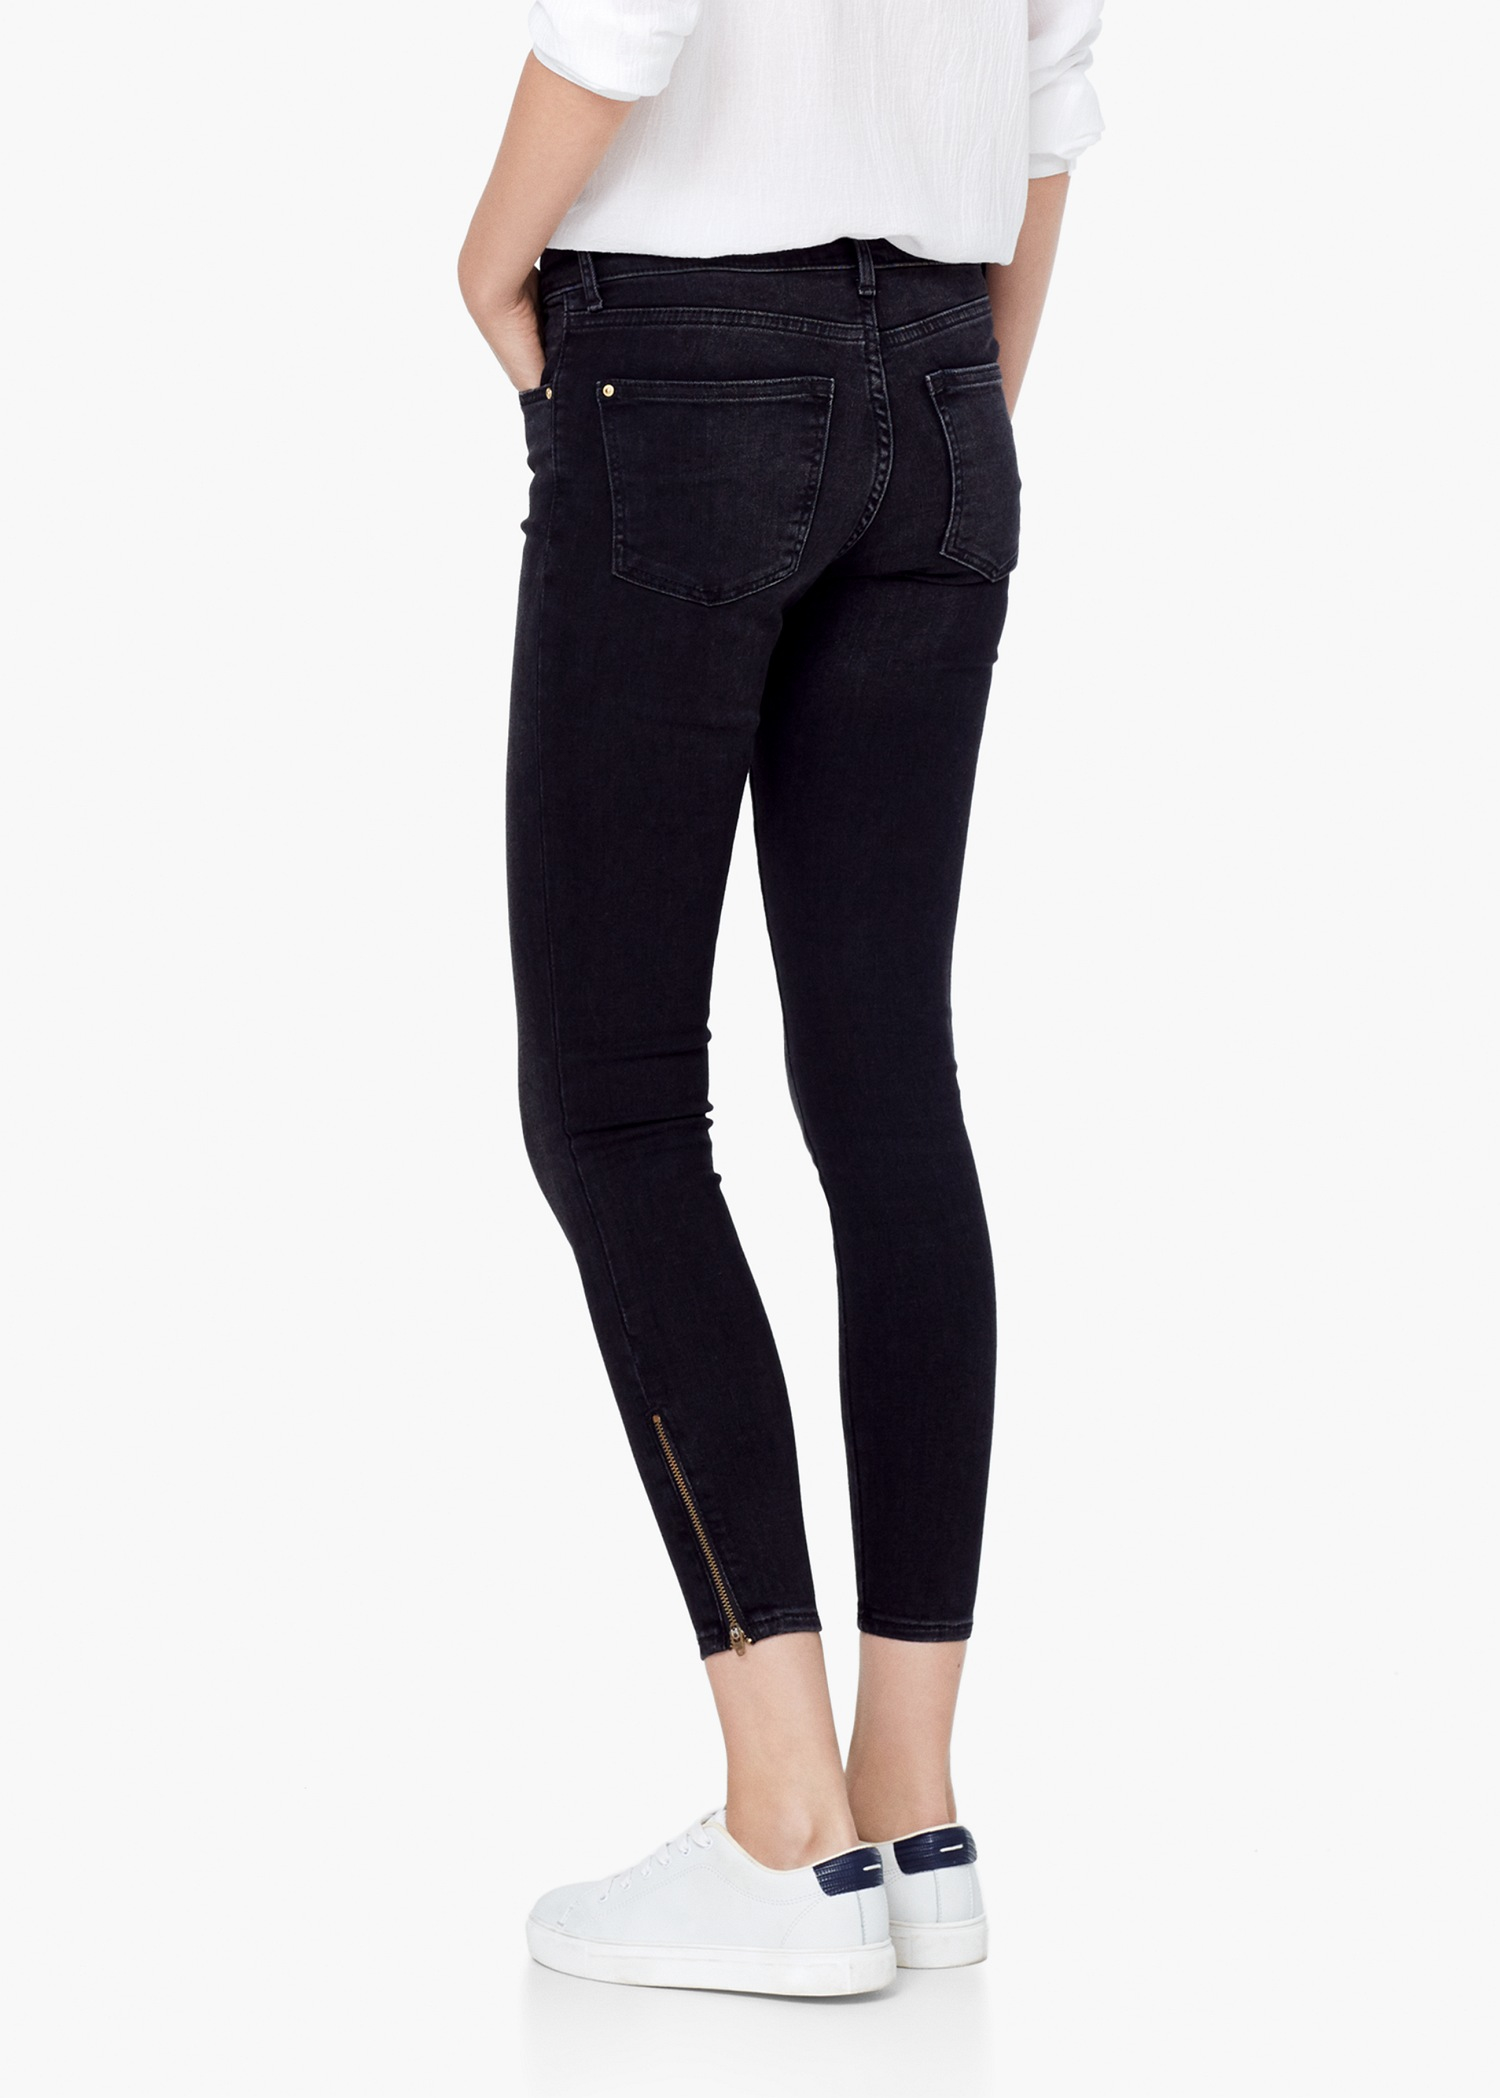 Mango Skinny Cropped Tattoo Jeans in Black | Lyst